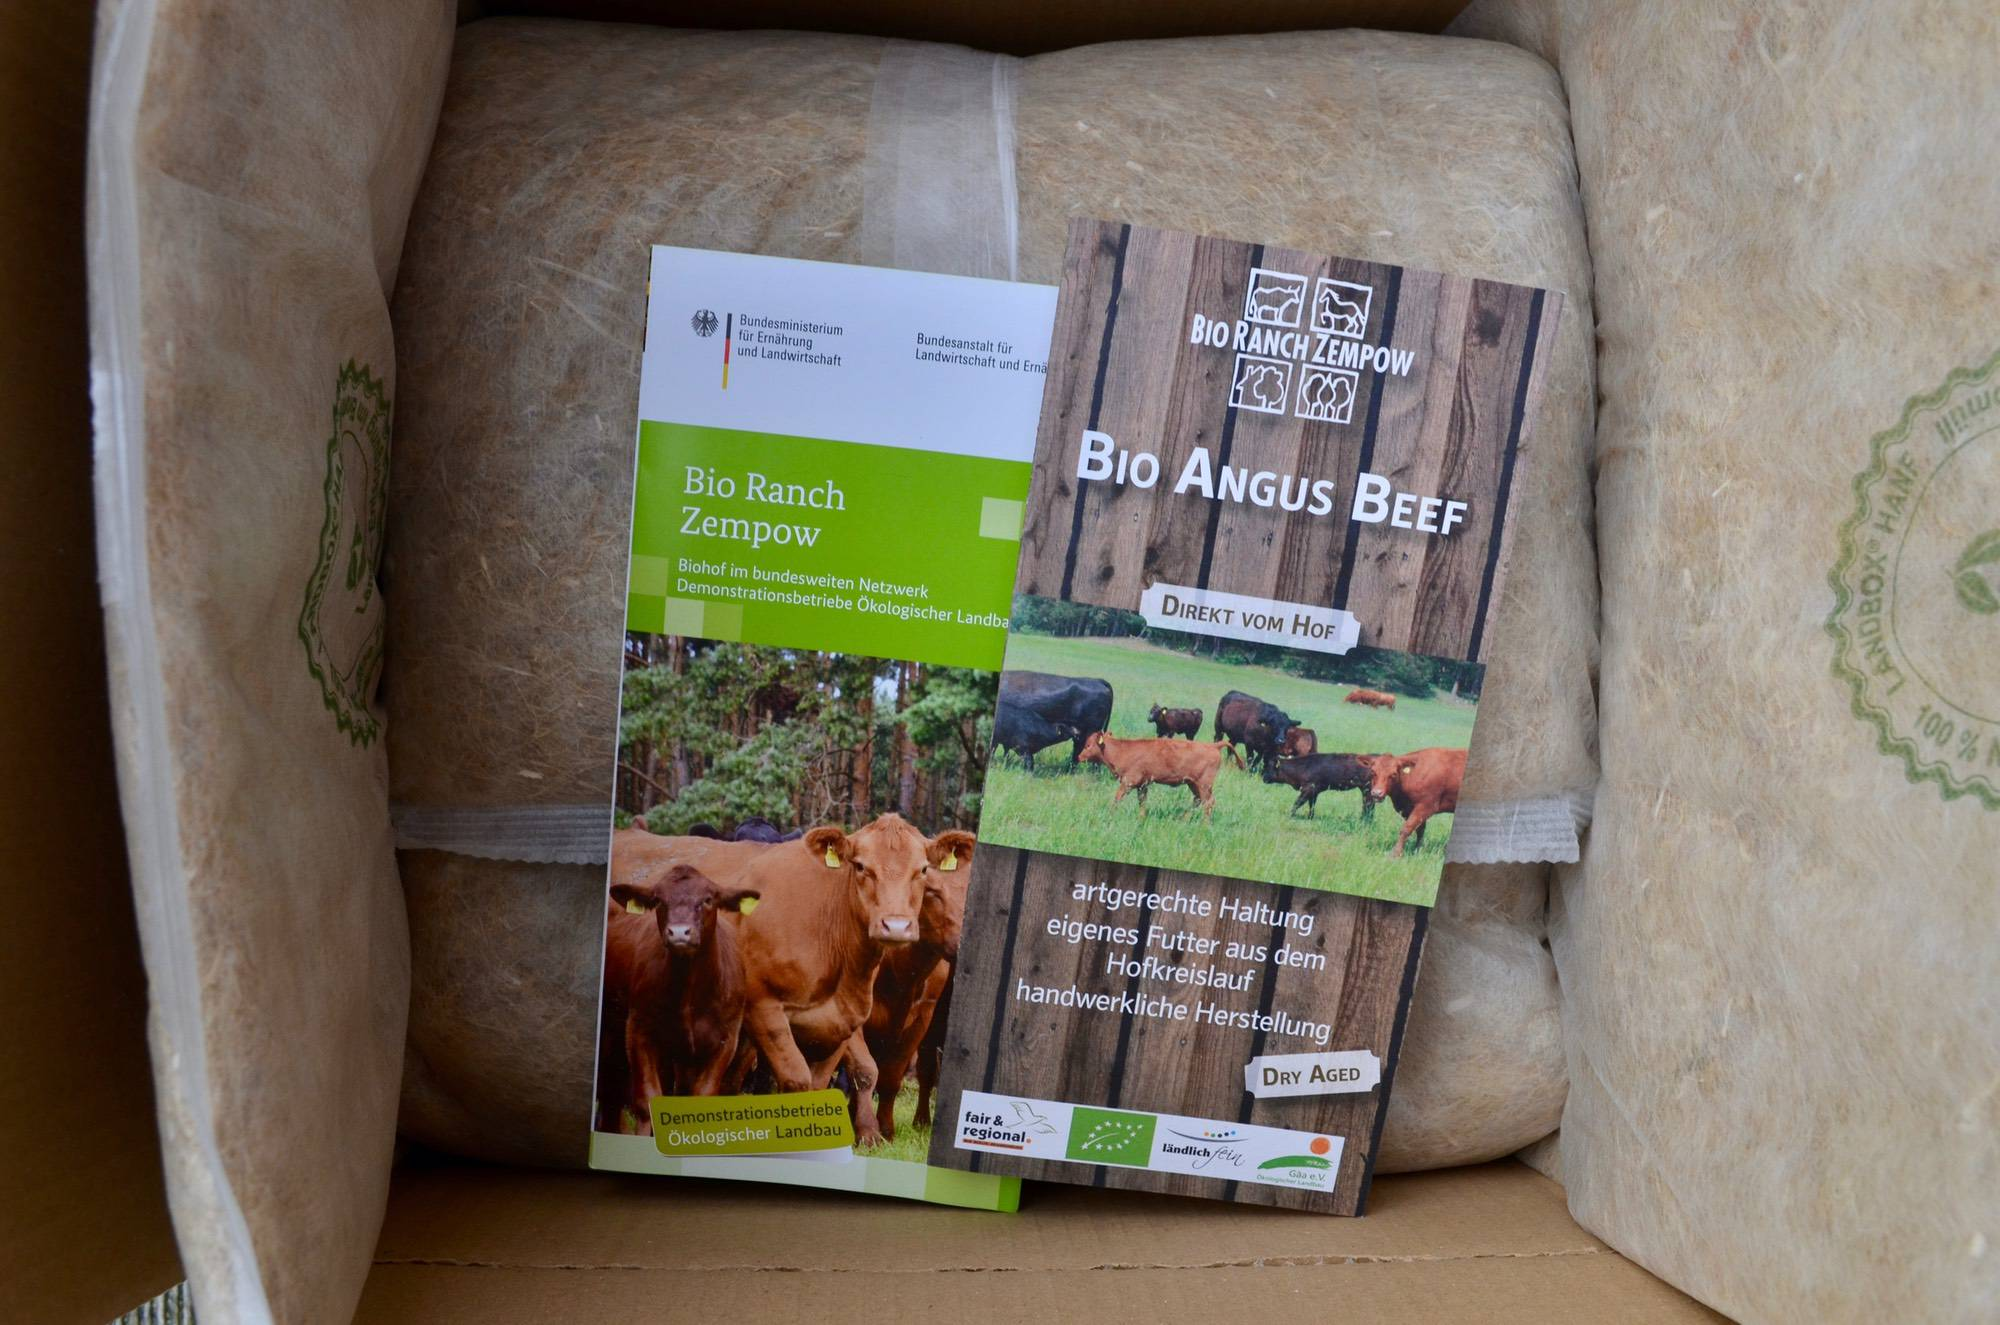 bio-ranch-landwirtschaft-angusbeef-landpack-hanfbox-04